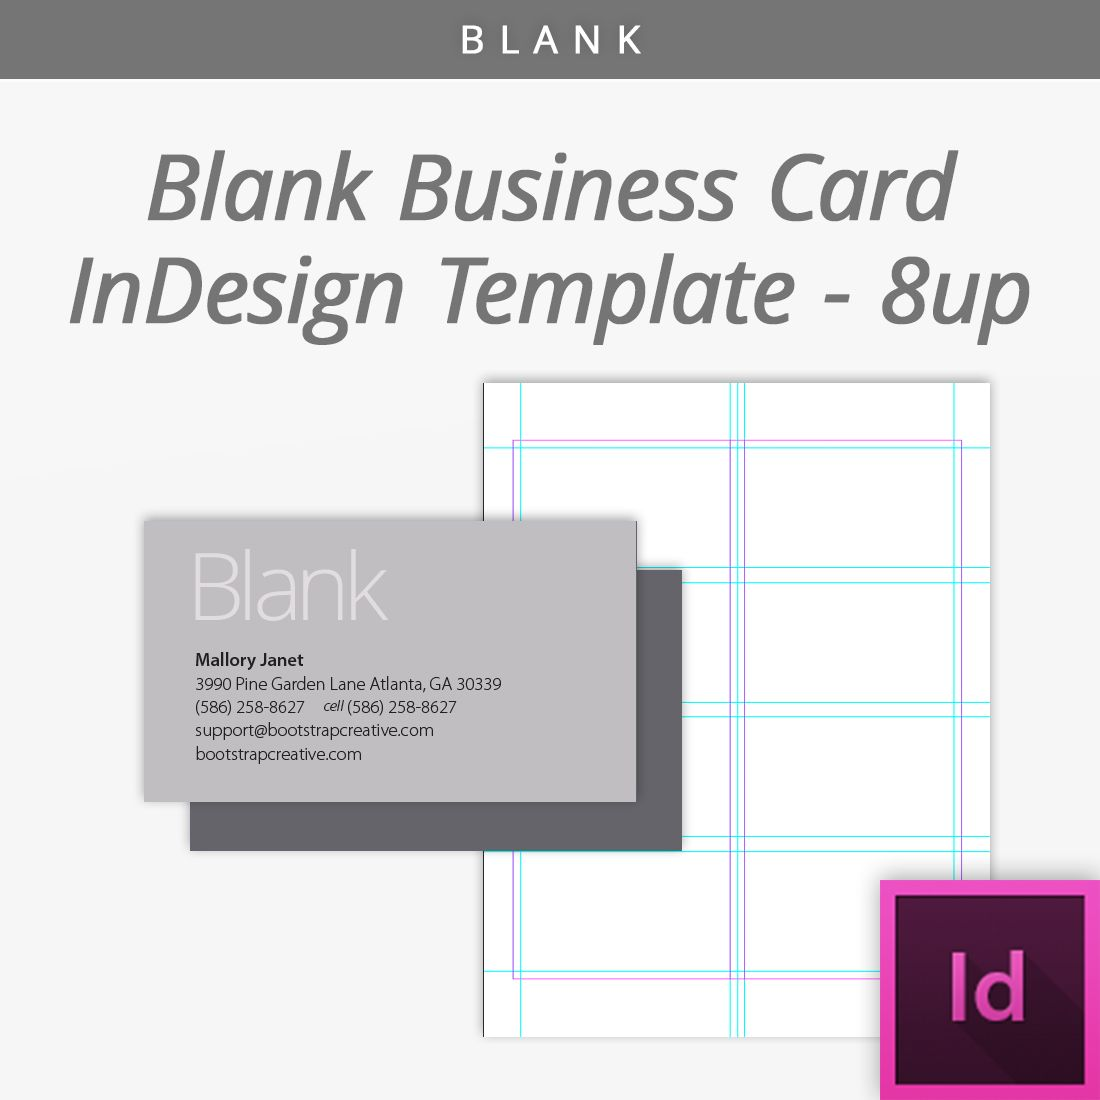 Blank indesign business card template 8 up free download blank indesign business card template 8 up free download designtemplate cheaphphosting Choice Image